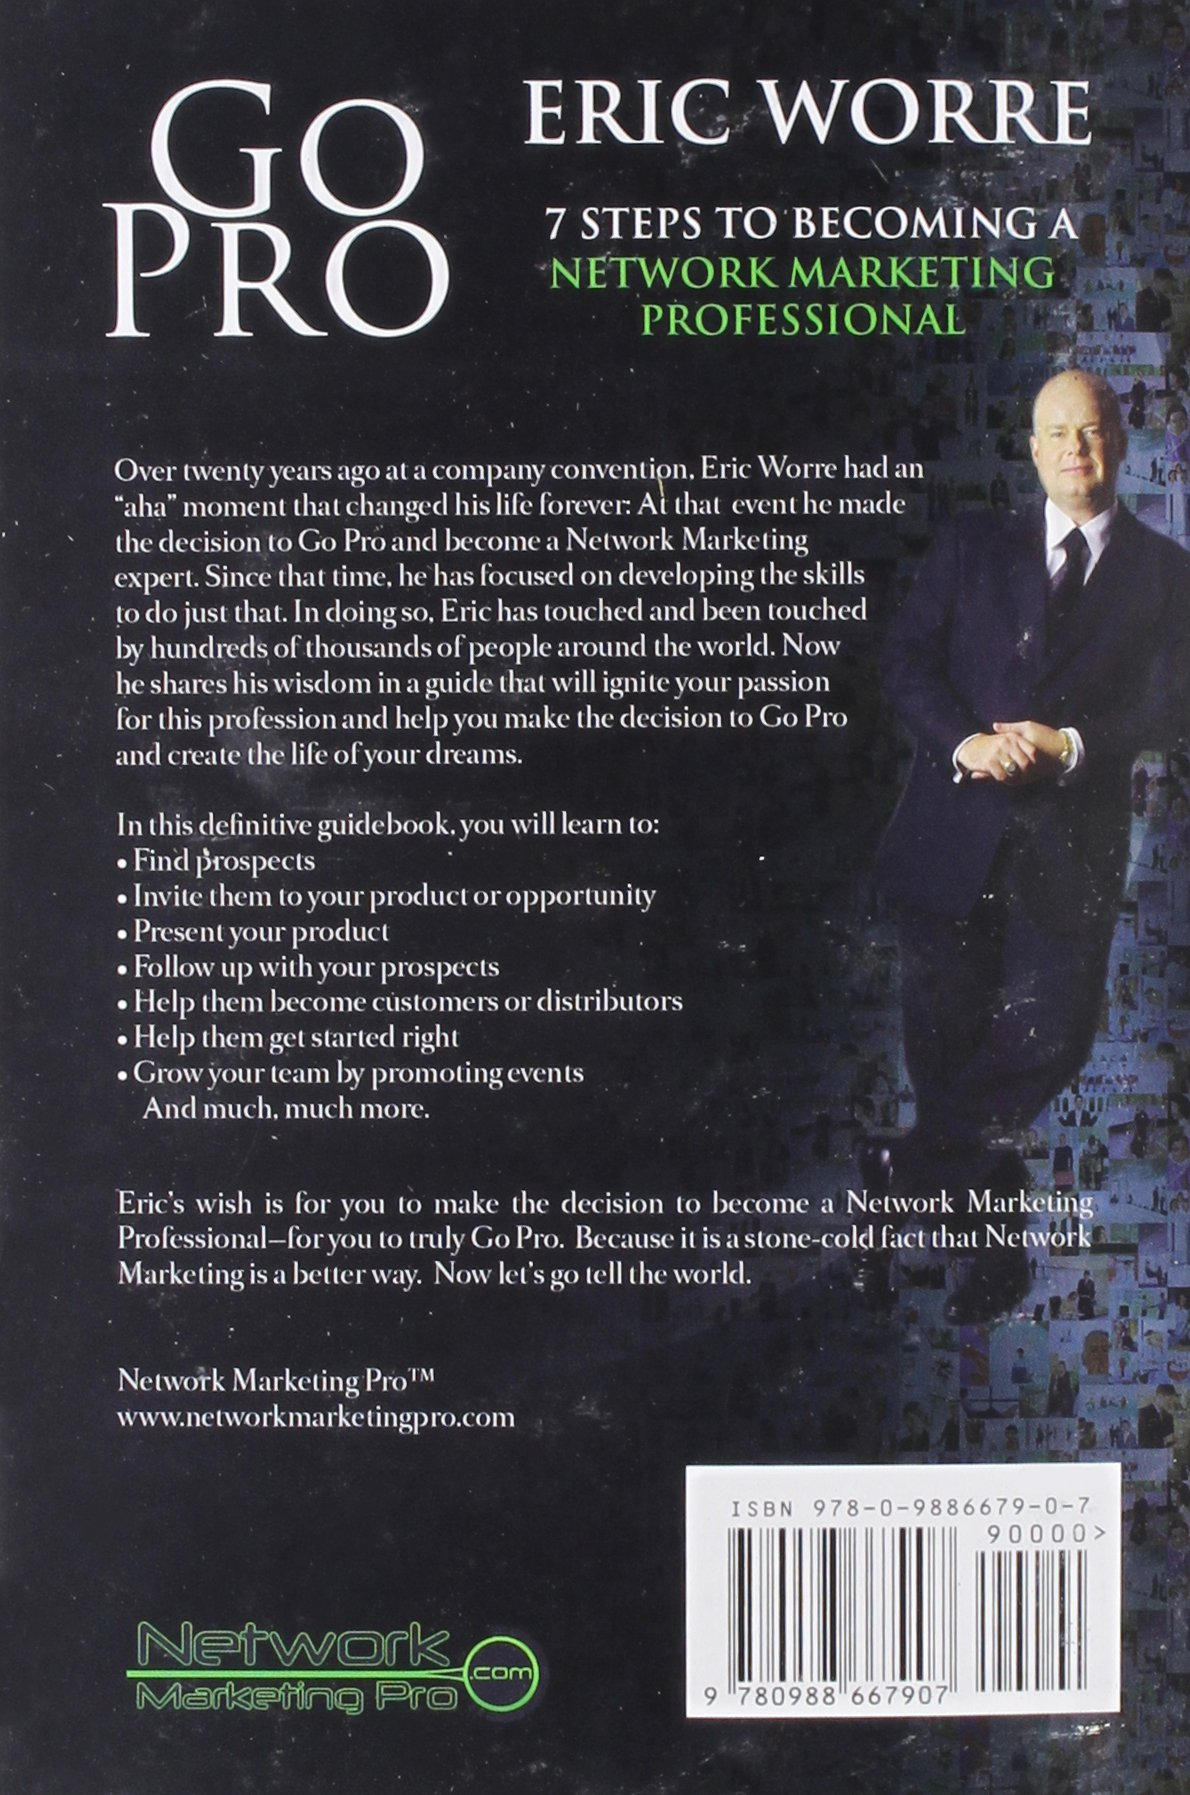 81qp15Fi1DL - Go Pro: 7 Steps to Becoming a Network Marketing Professional